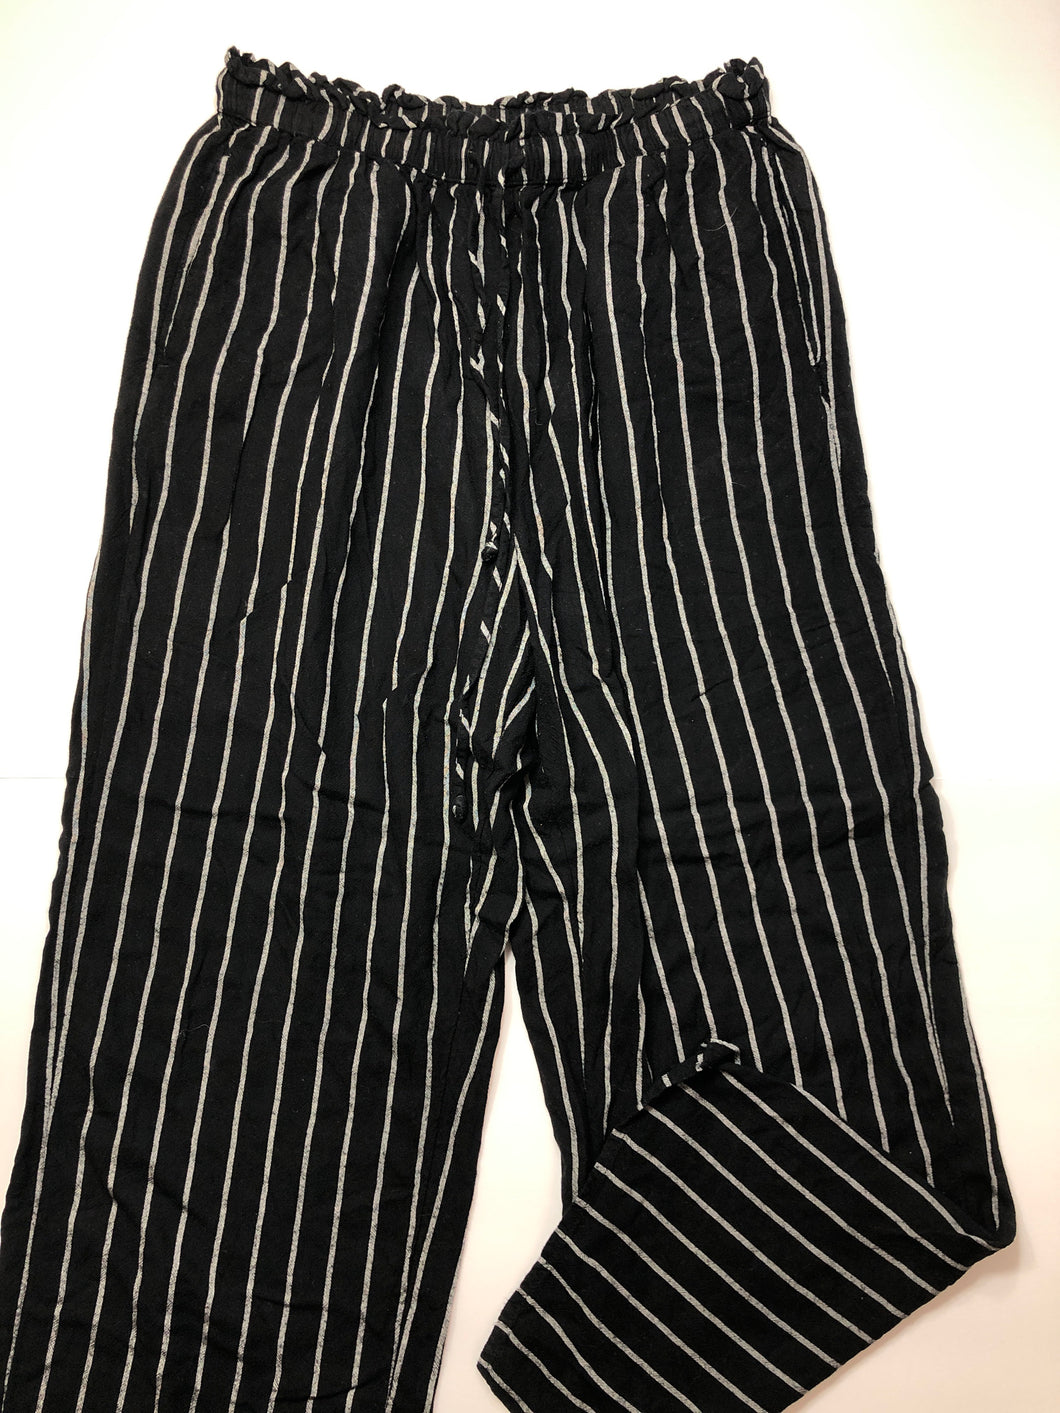 Gently Used Women's American Eagle Pants Size L